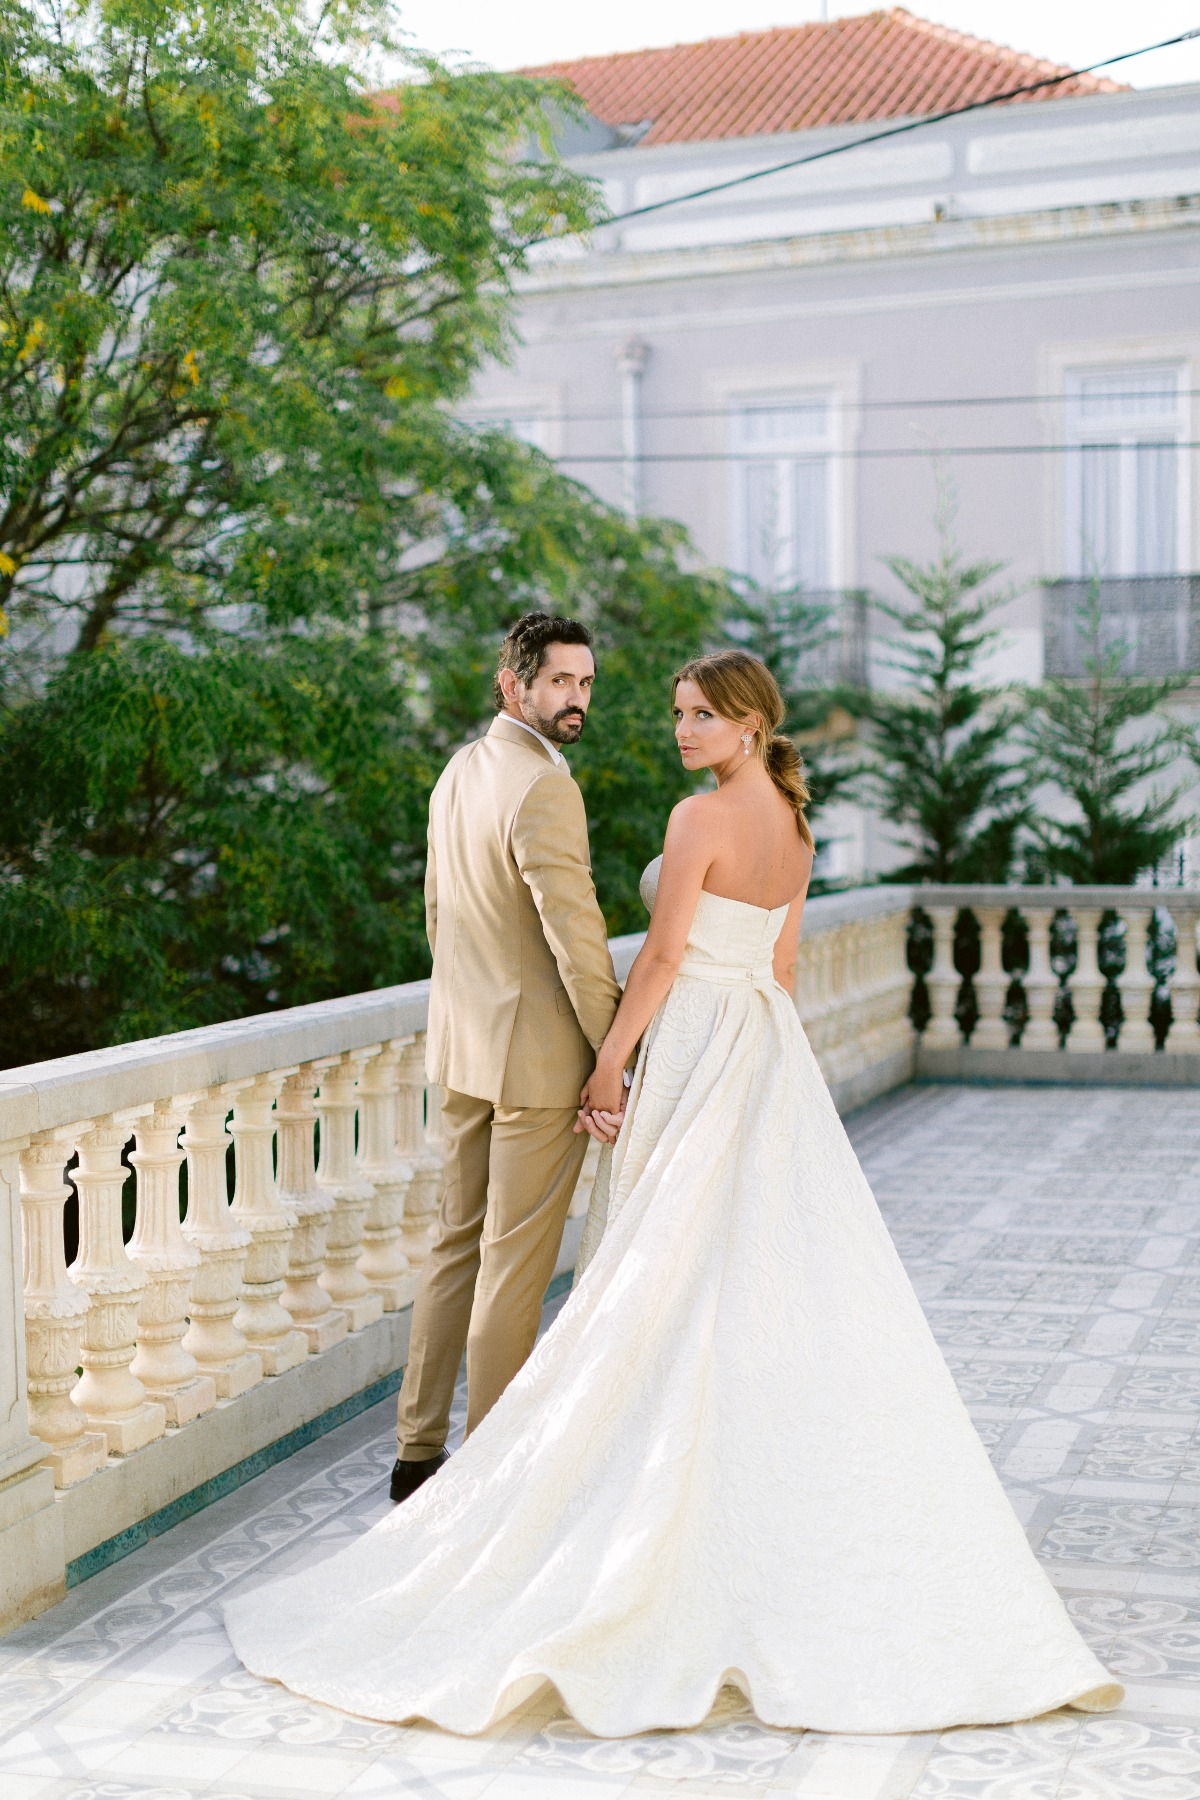 Elegant chateau wedding venue in Portugal